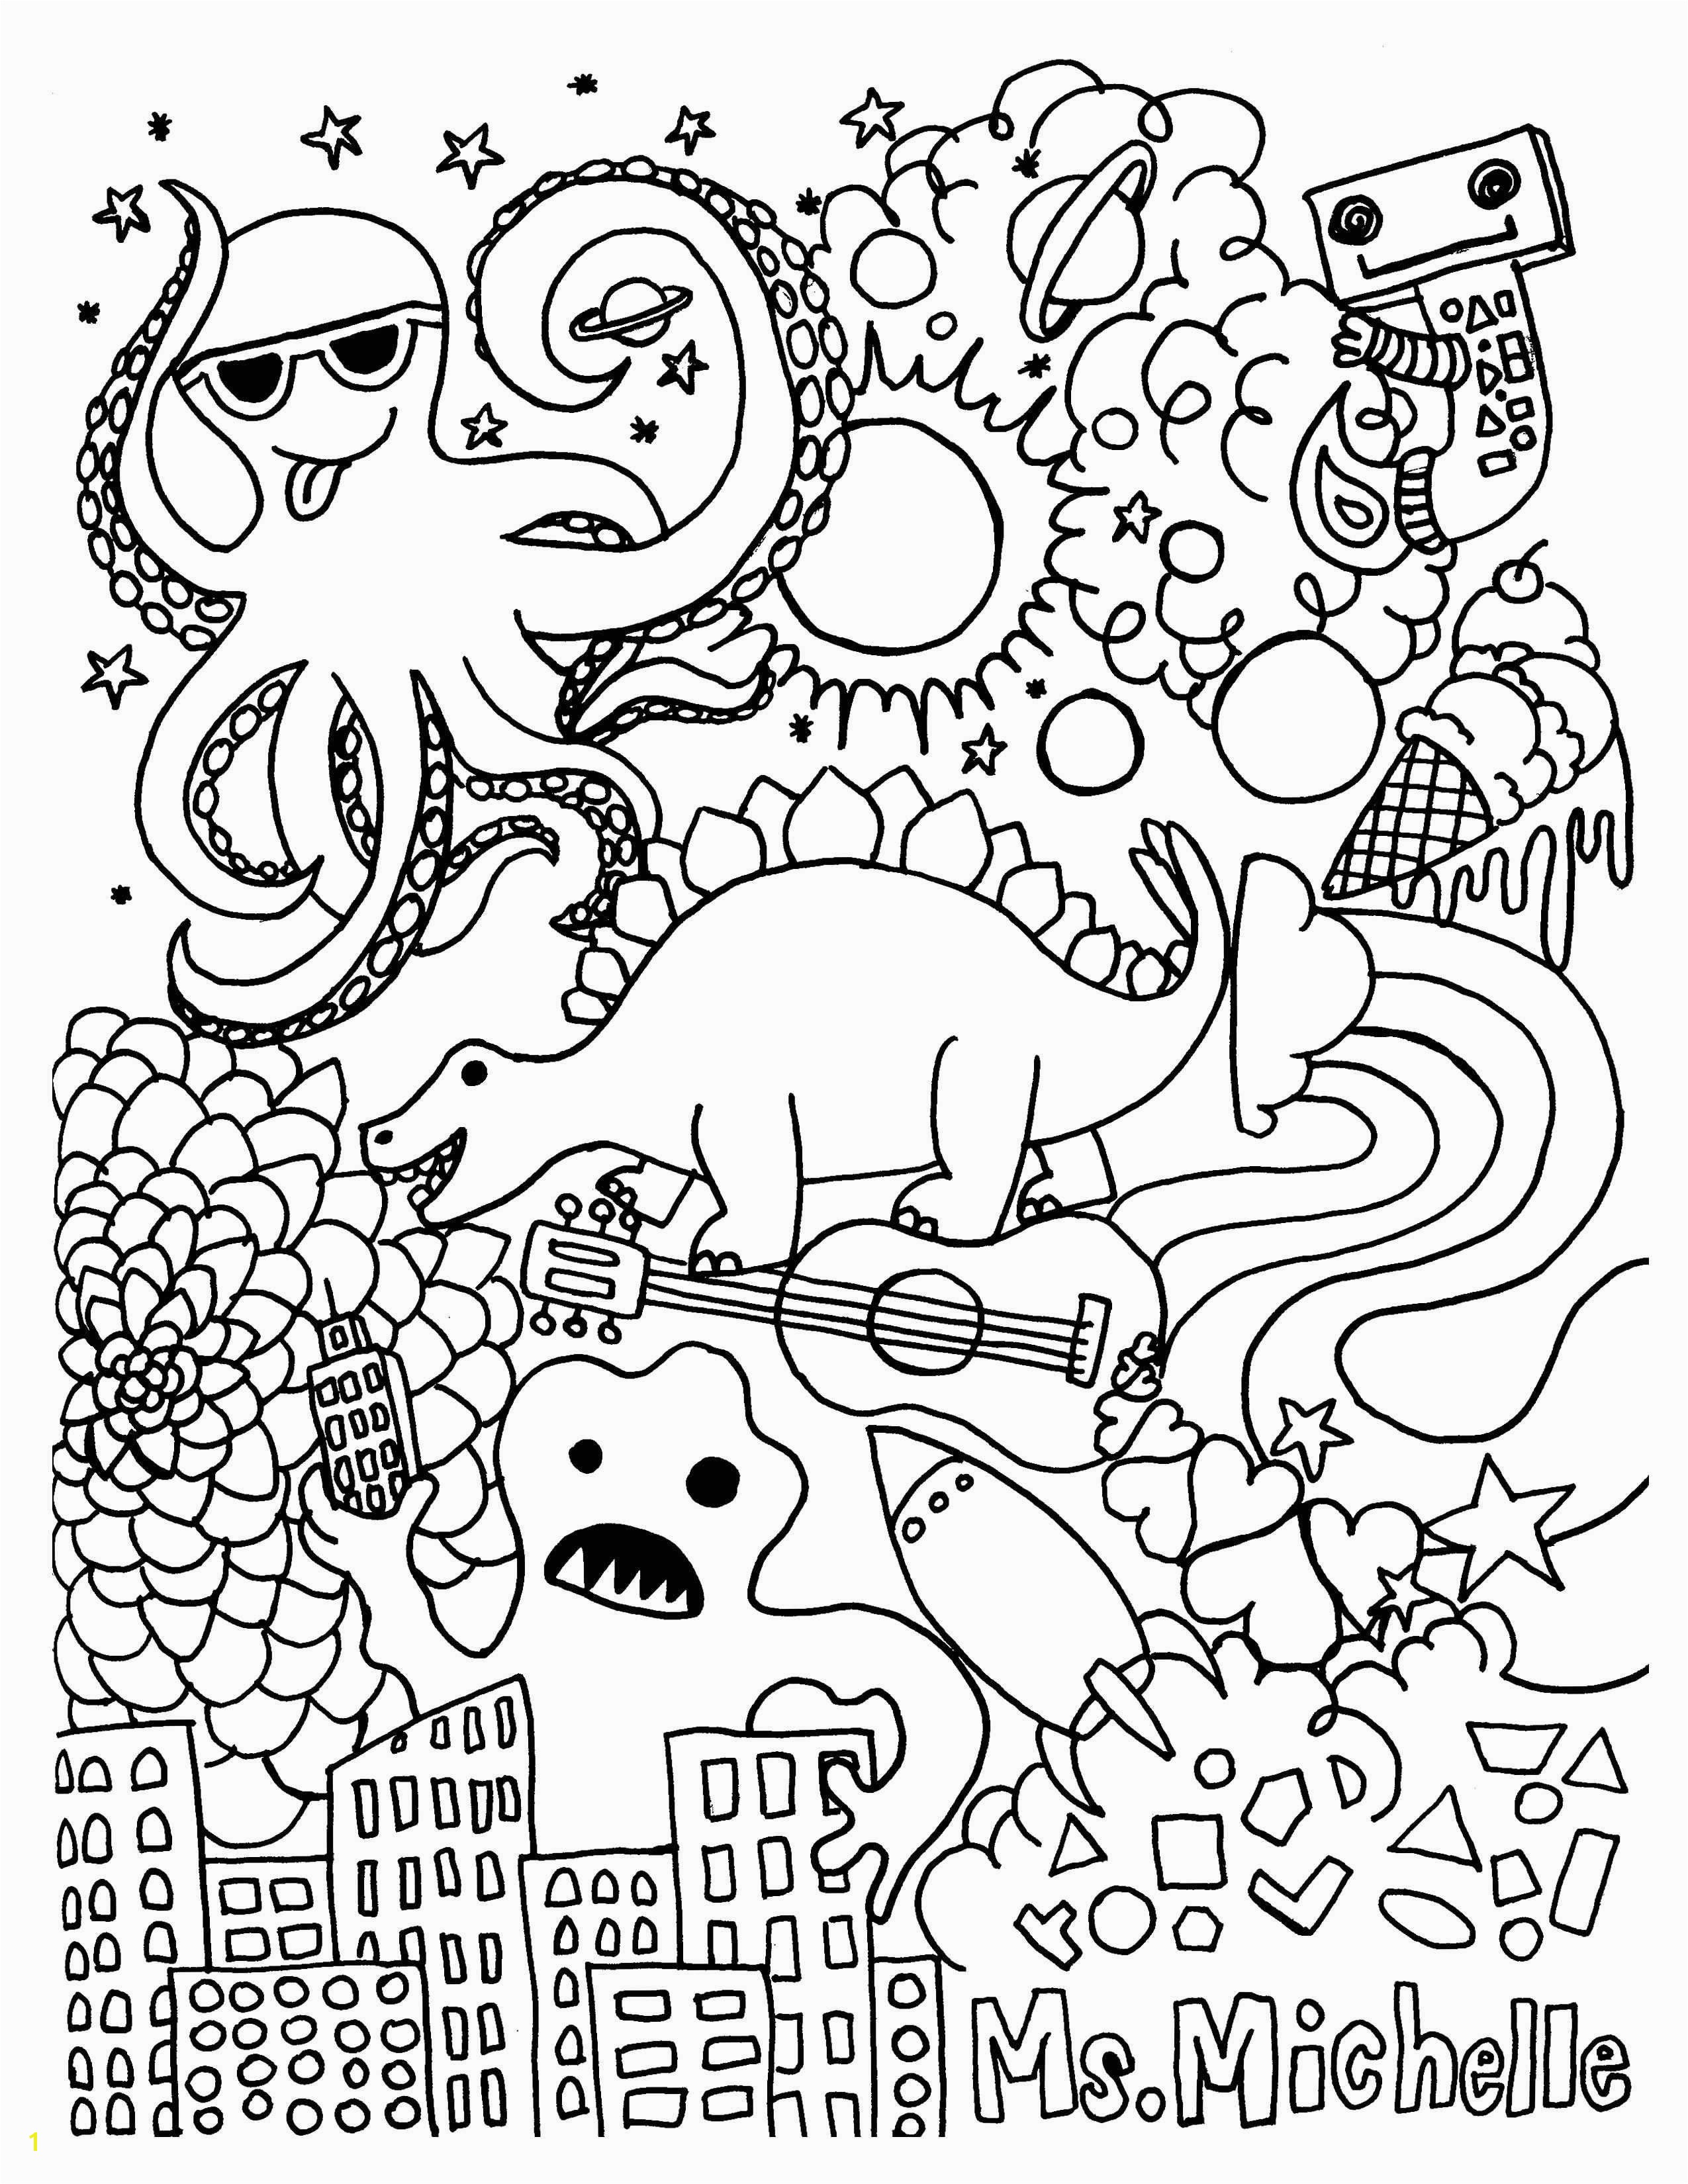 Free Bible Christmas Coloring Pages 38 Bible Christmas Coloring Pages Free